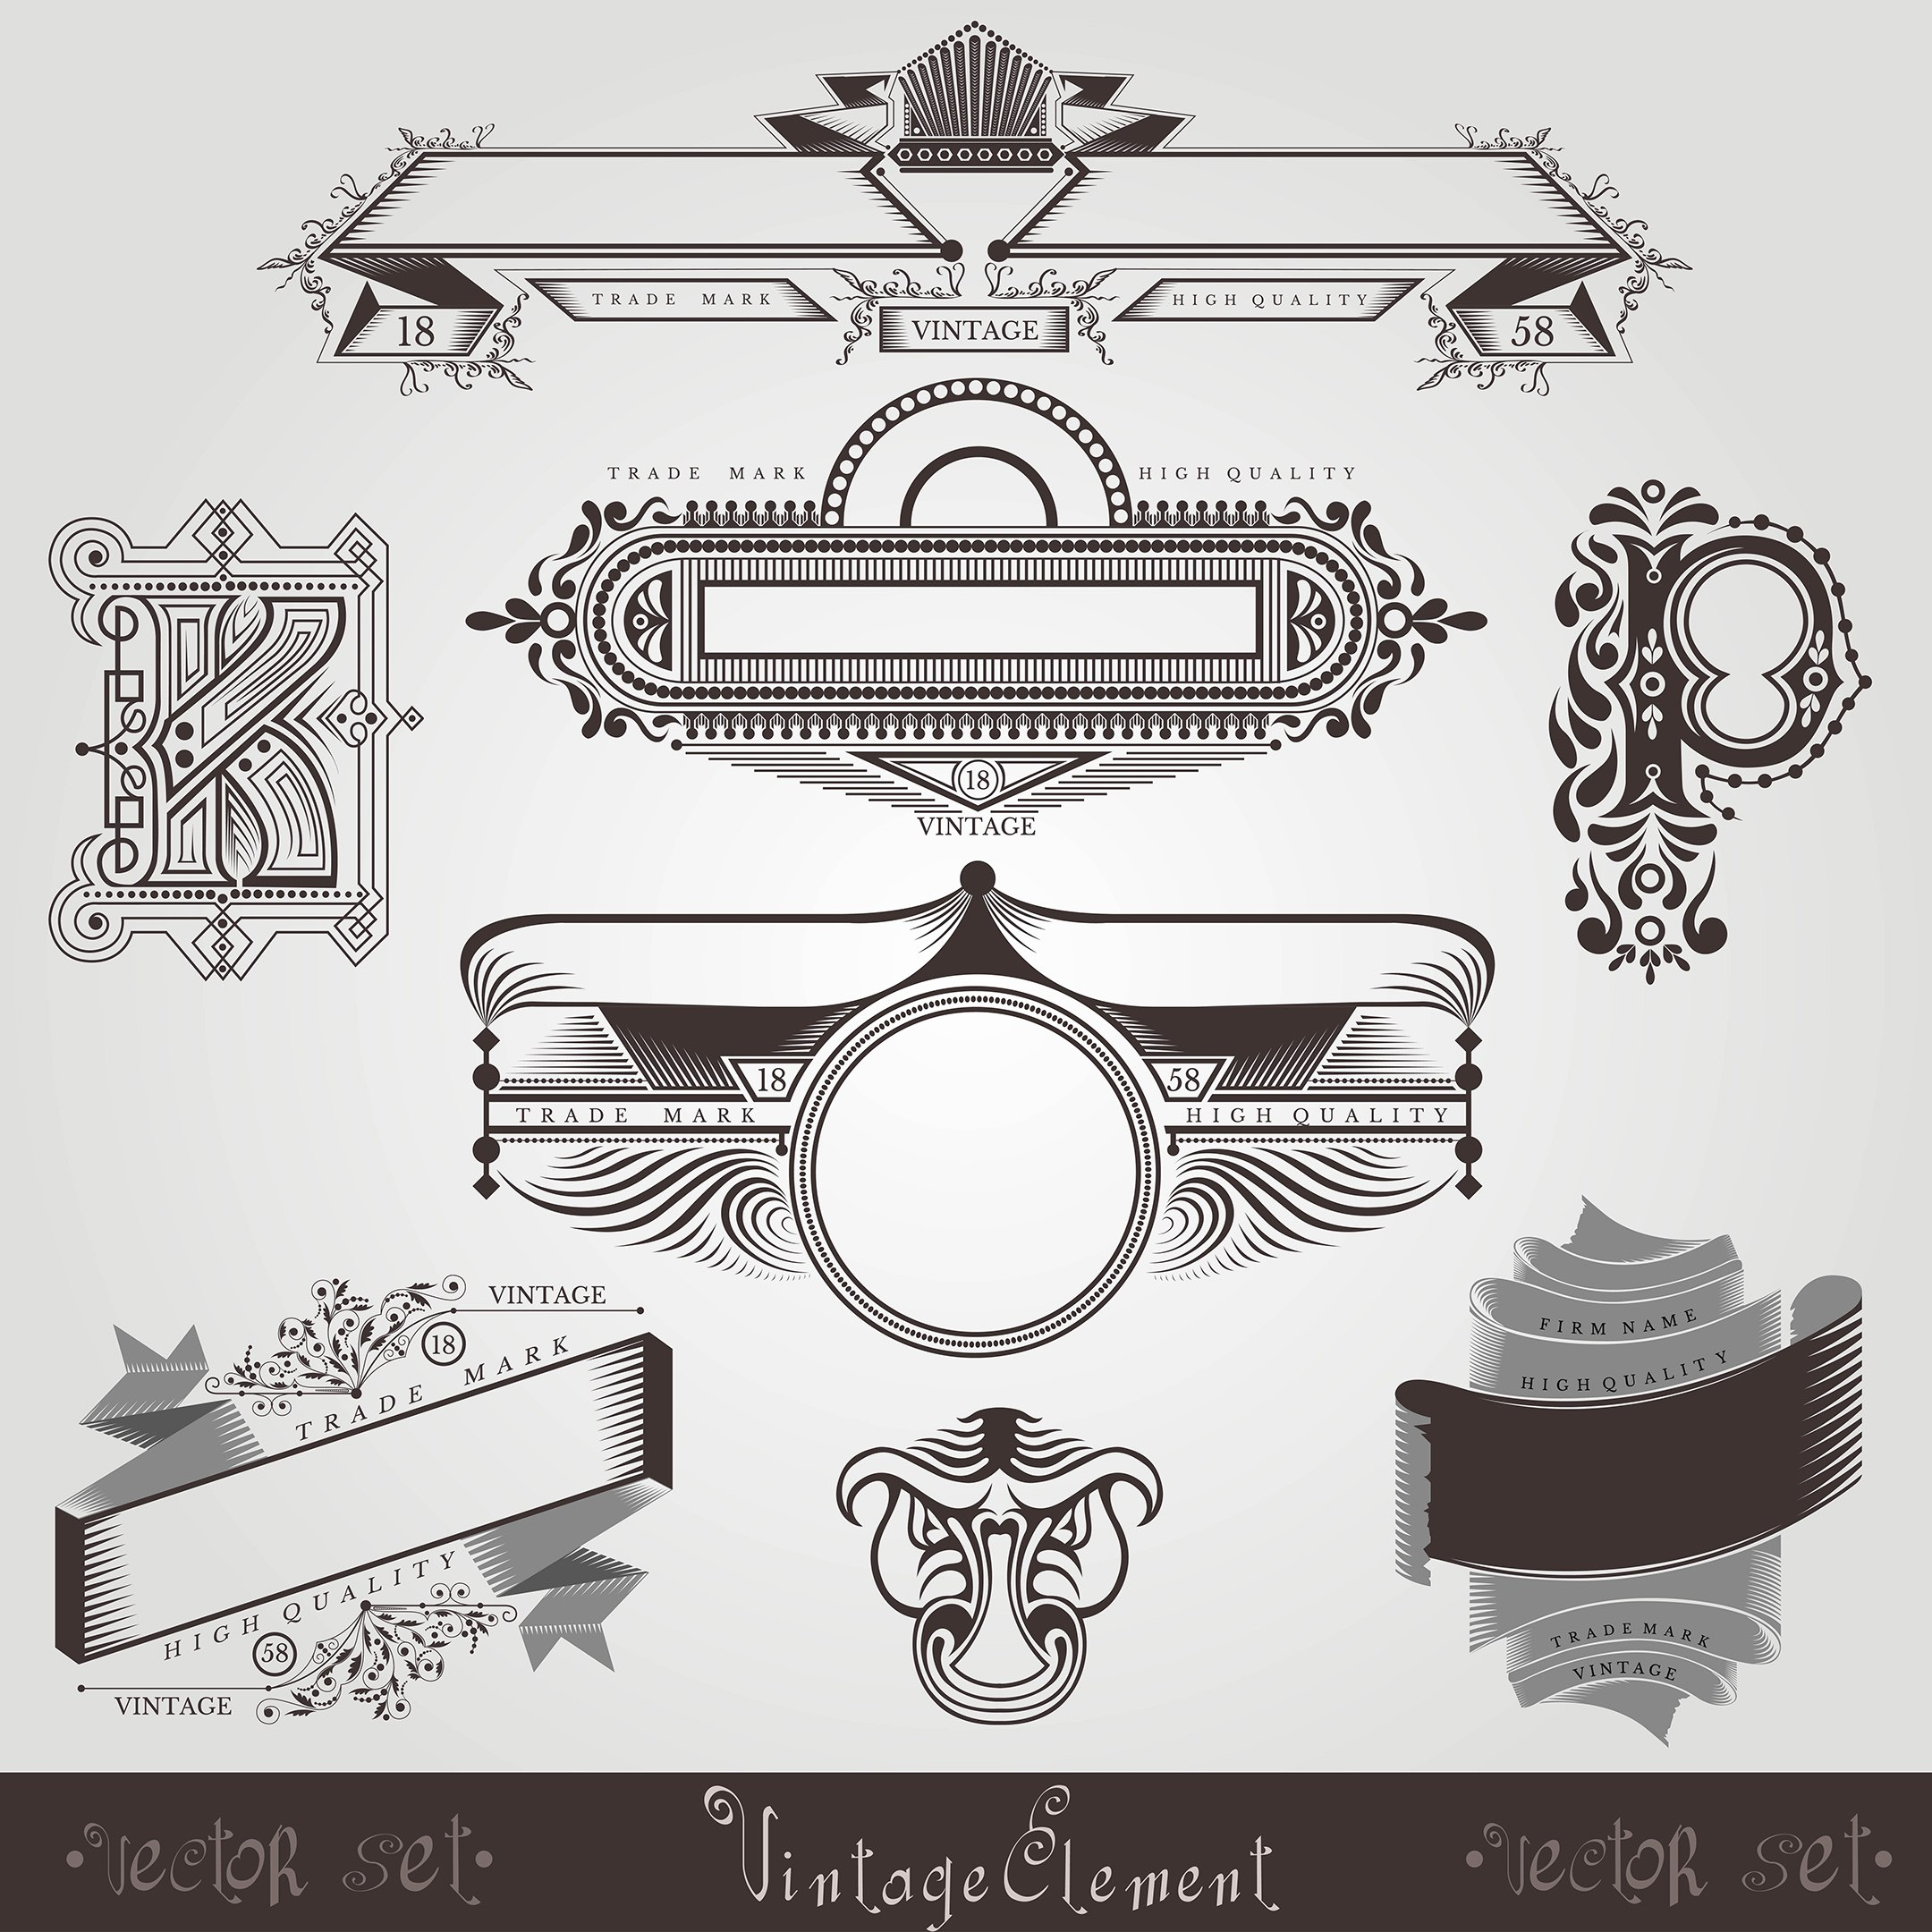 Vintage Engraving Banners With Different Letter And Pattern Free Vector